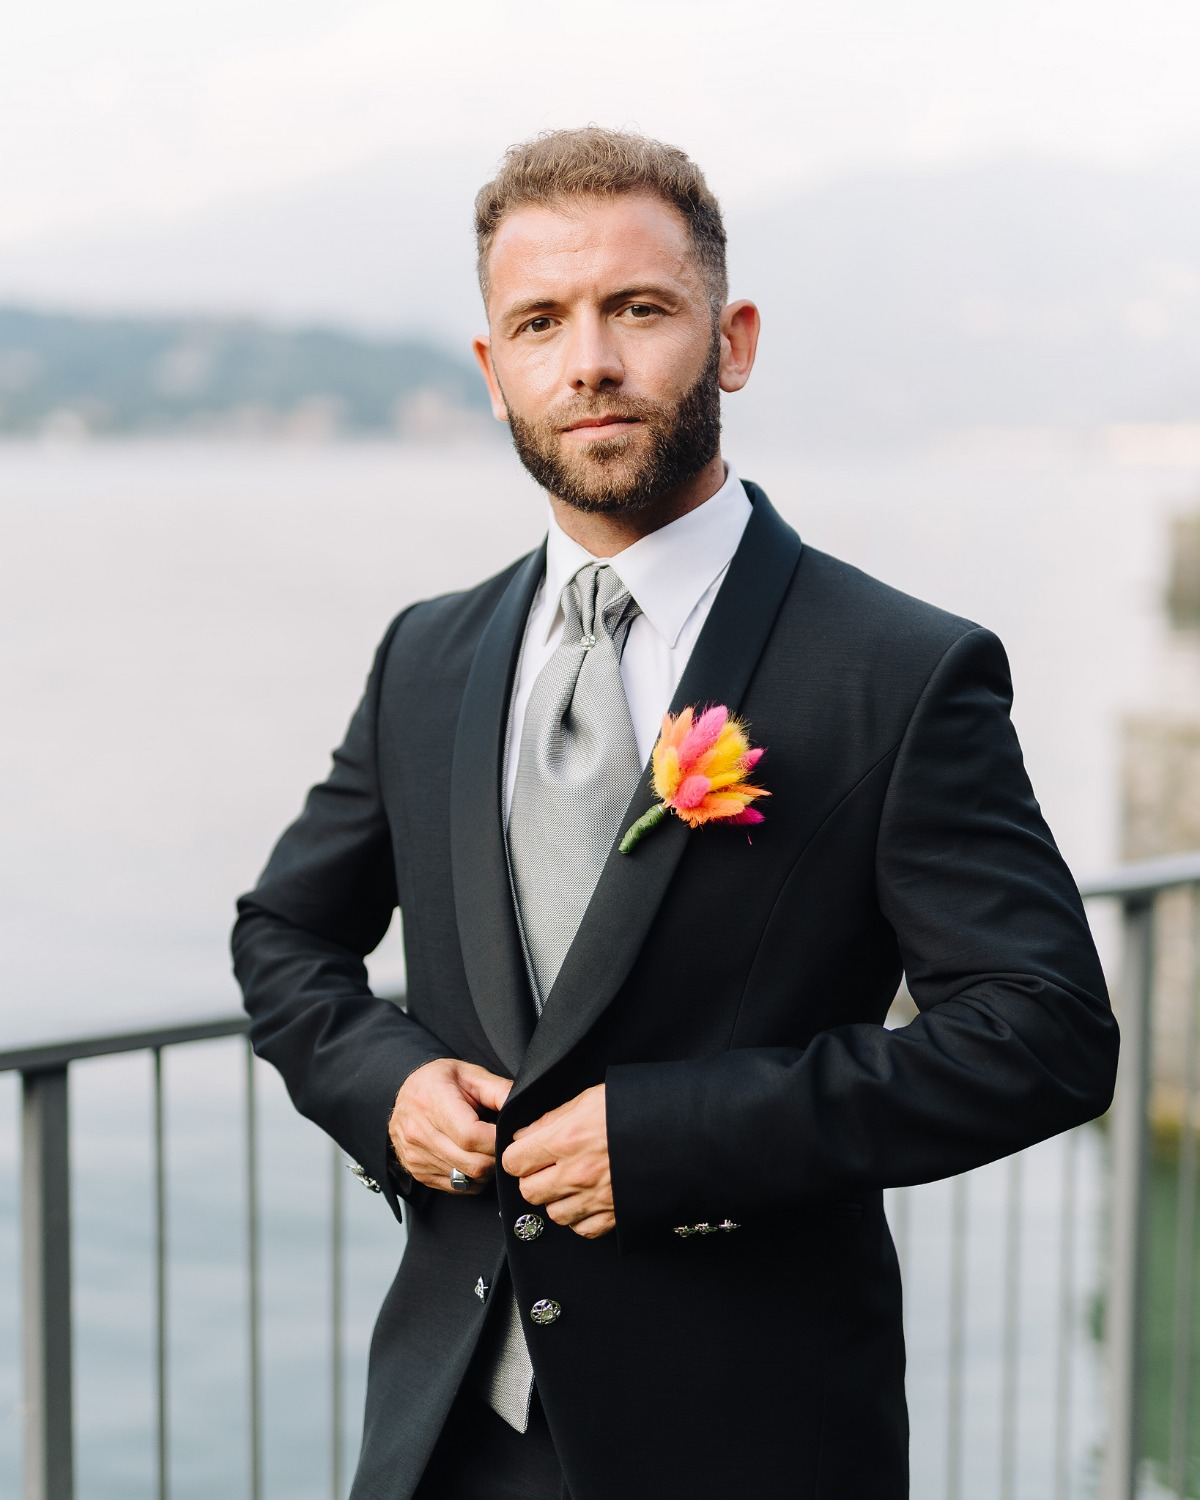 groom with a vibrant boutonniere